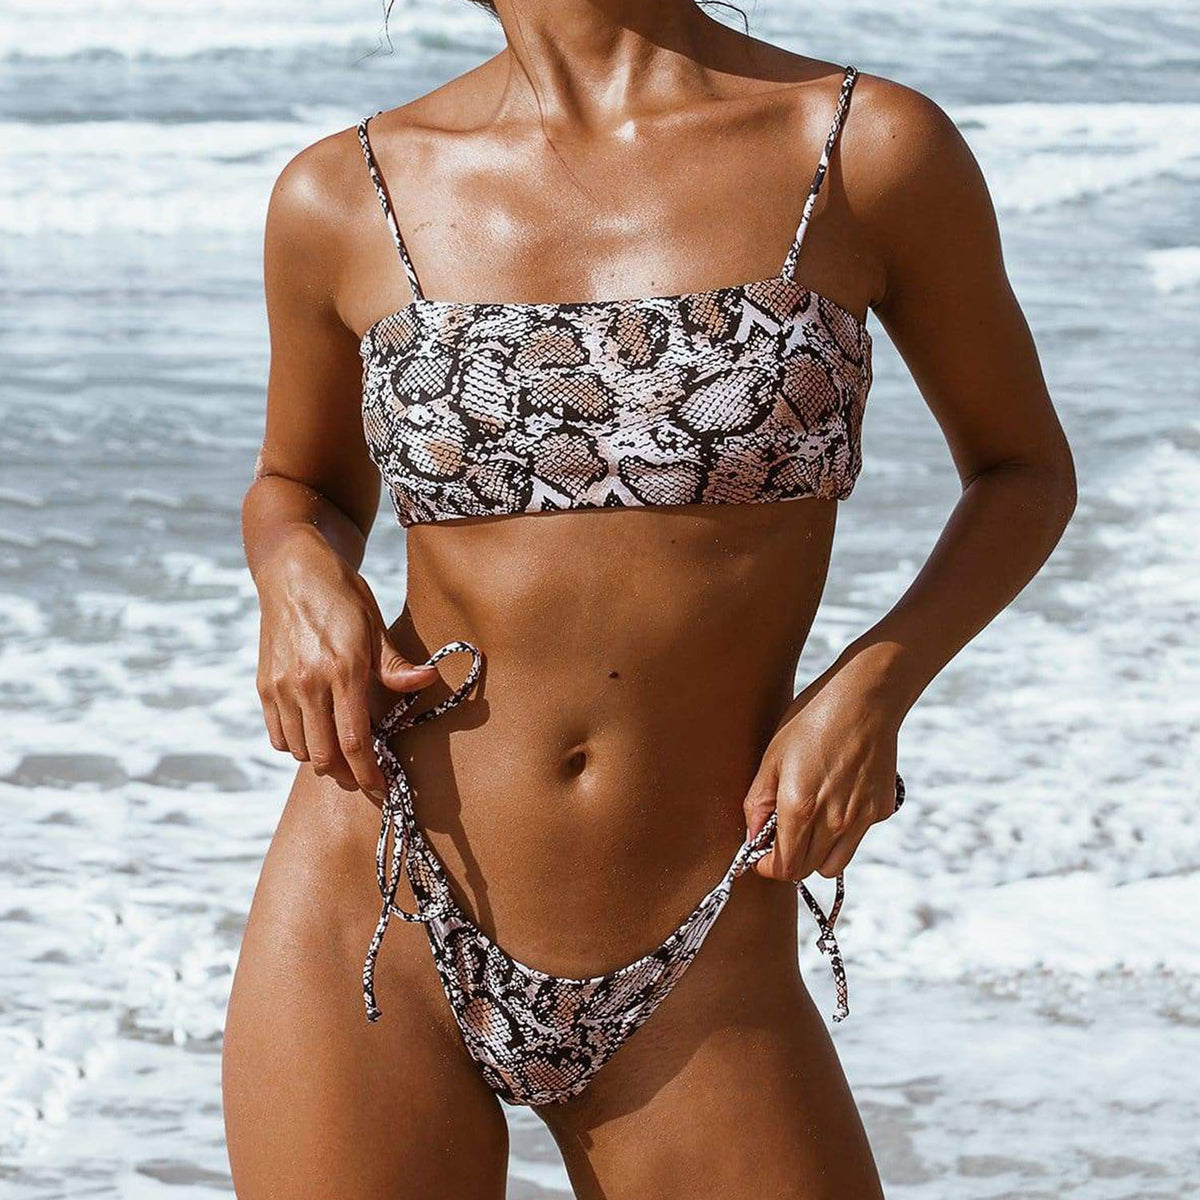 Animal Print Strappy Bandeaux Bikini Swimsuit YS20 - worthtryit.com